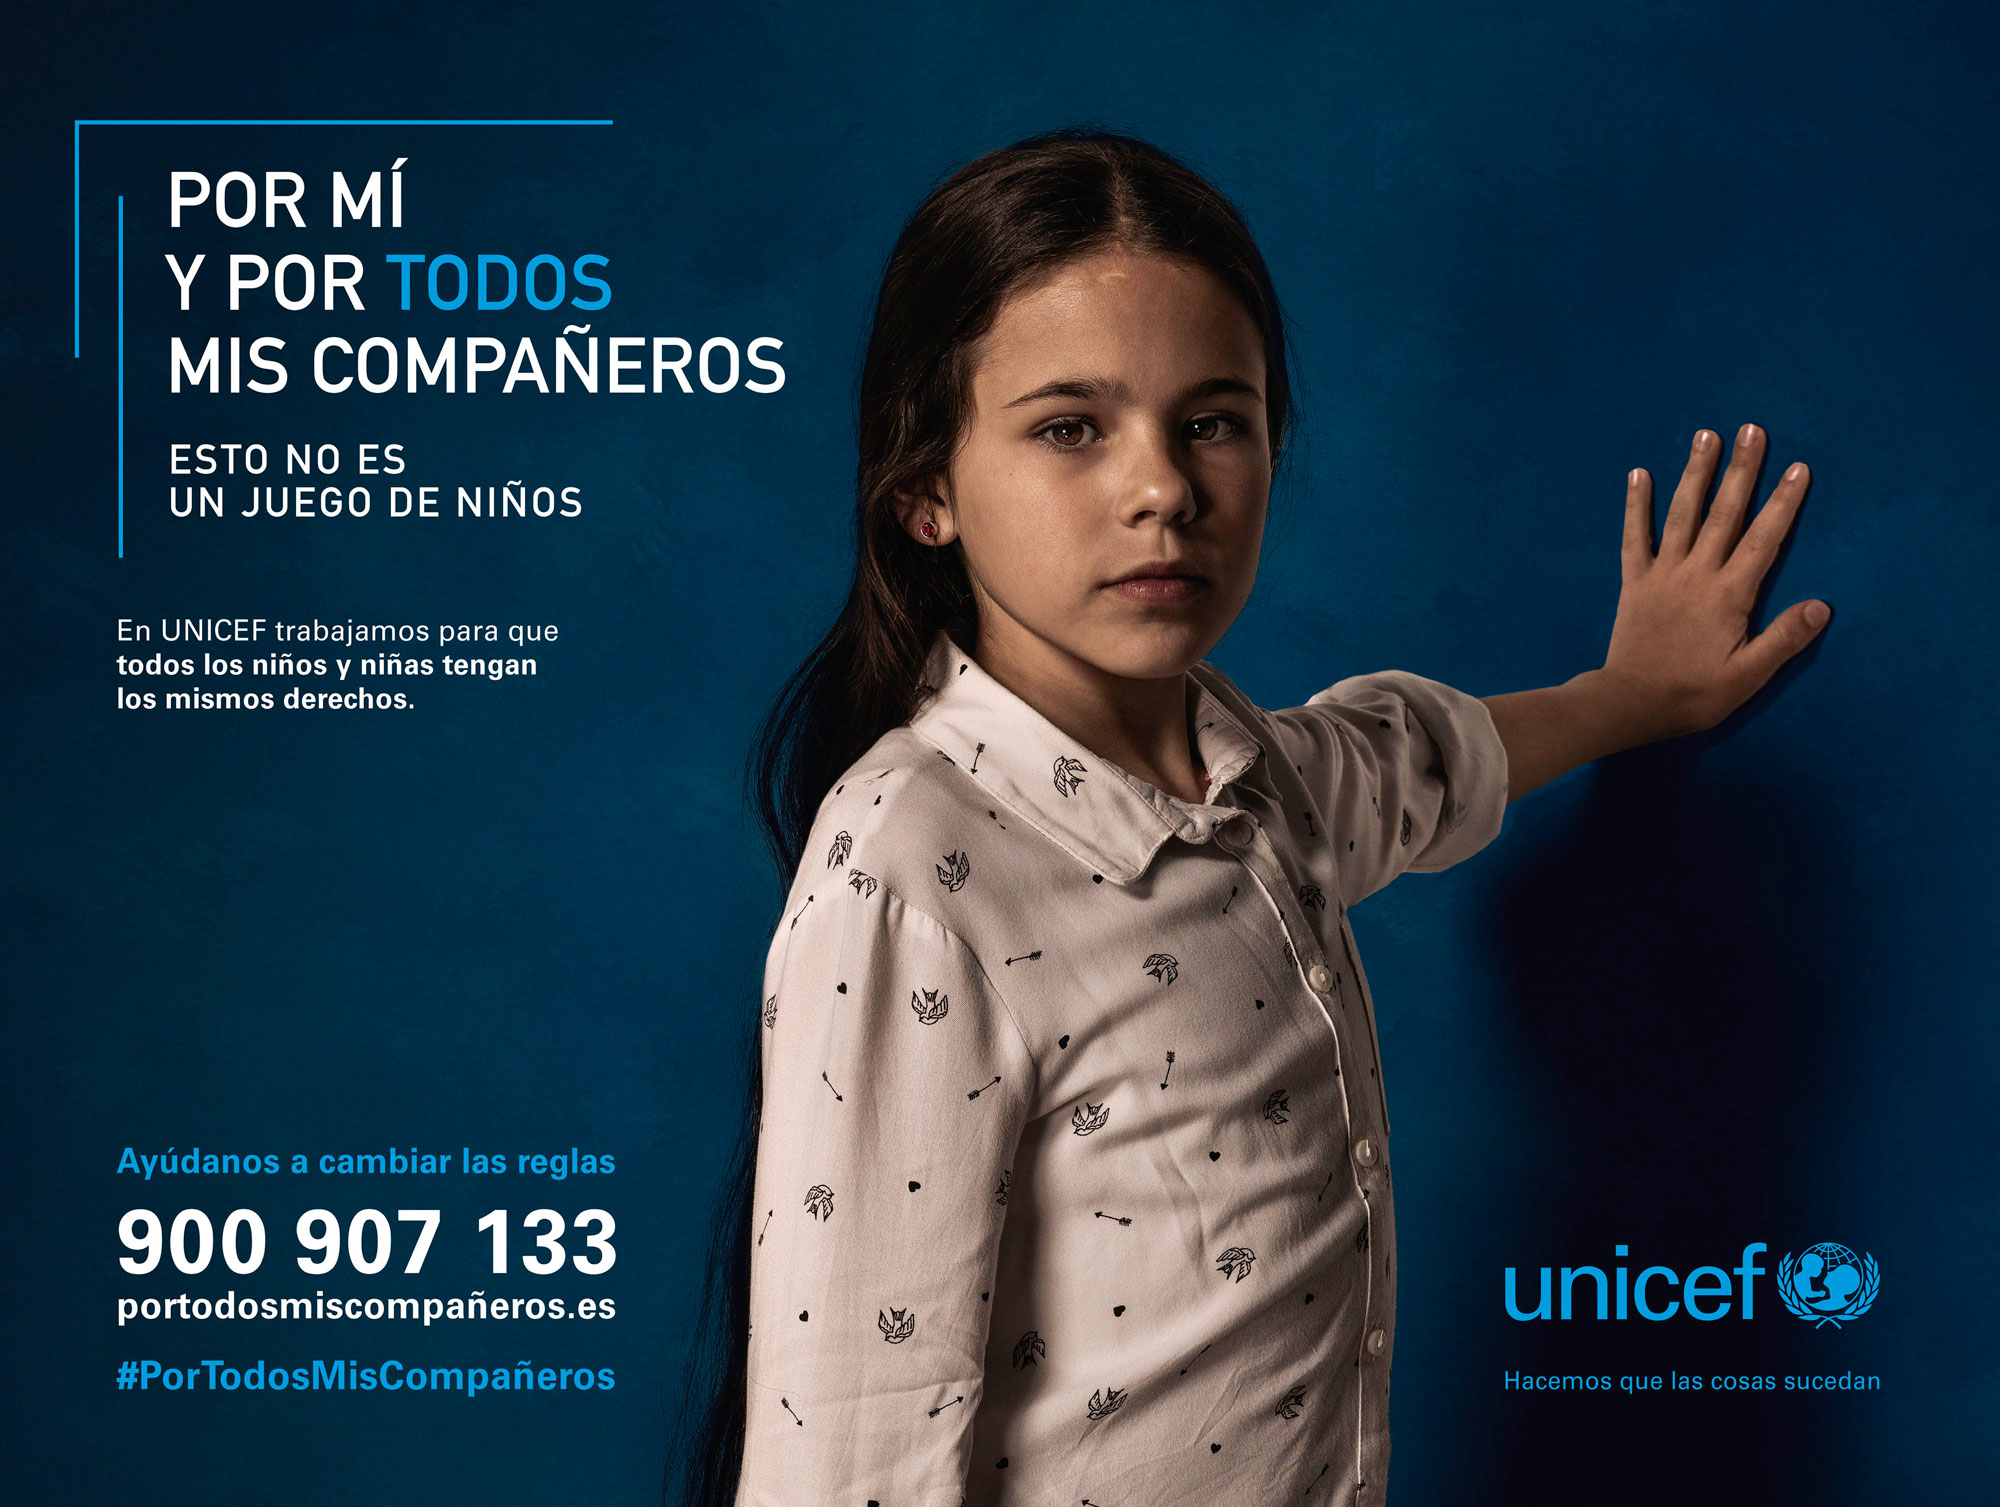 Unicef by Jorge Alvariño | Agency: Gyro: